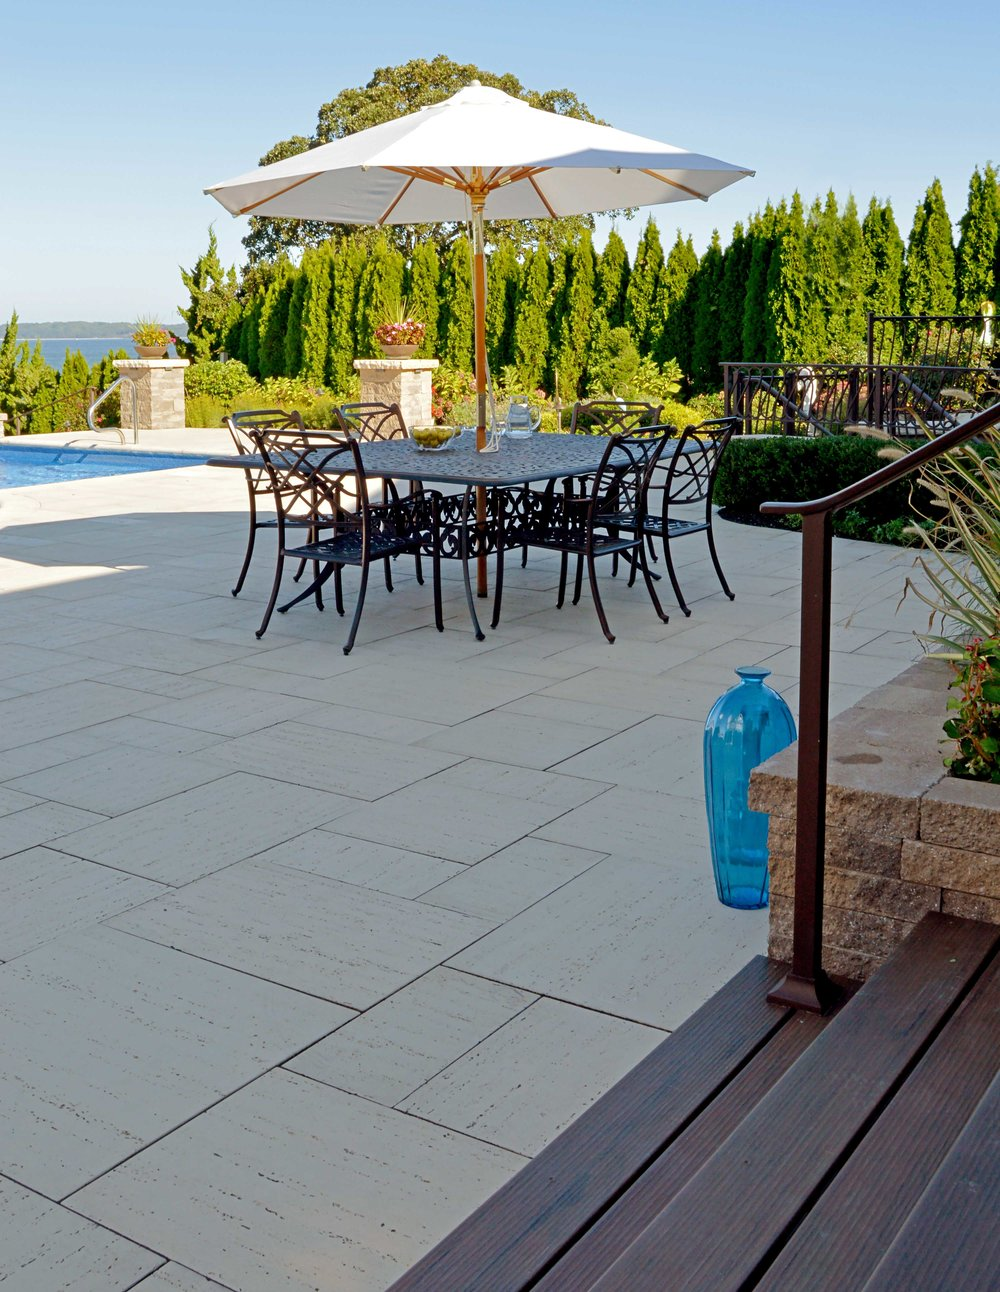 Oceanview swimming pool landscaping in Bayvlle, NY